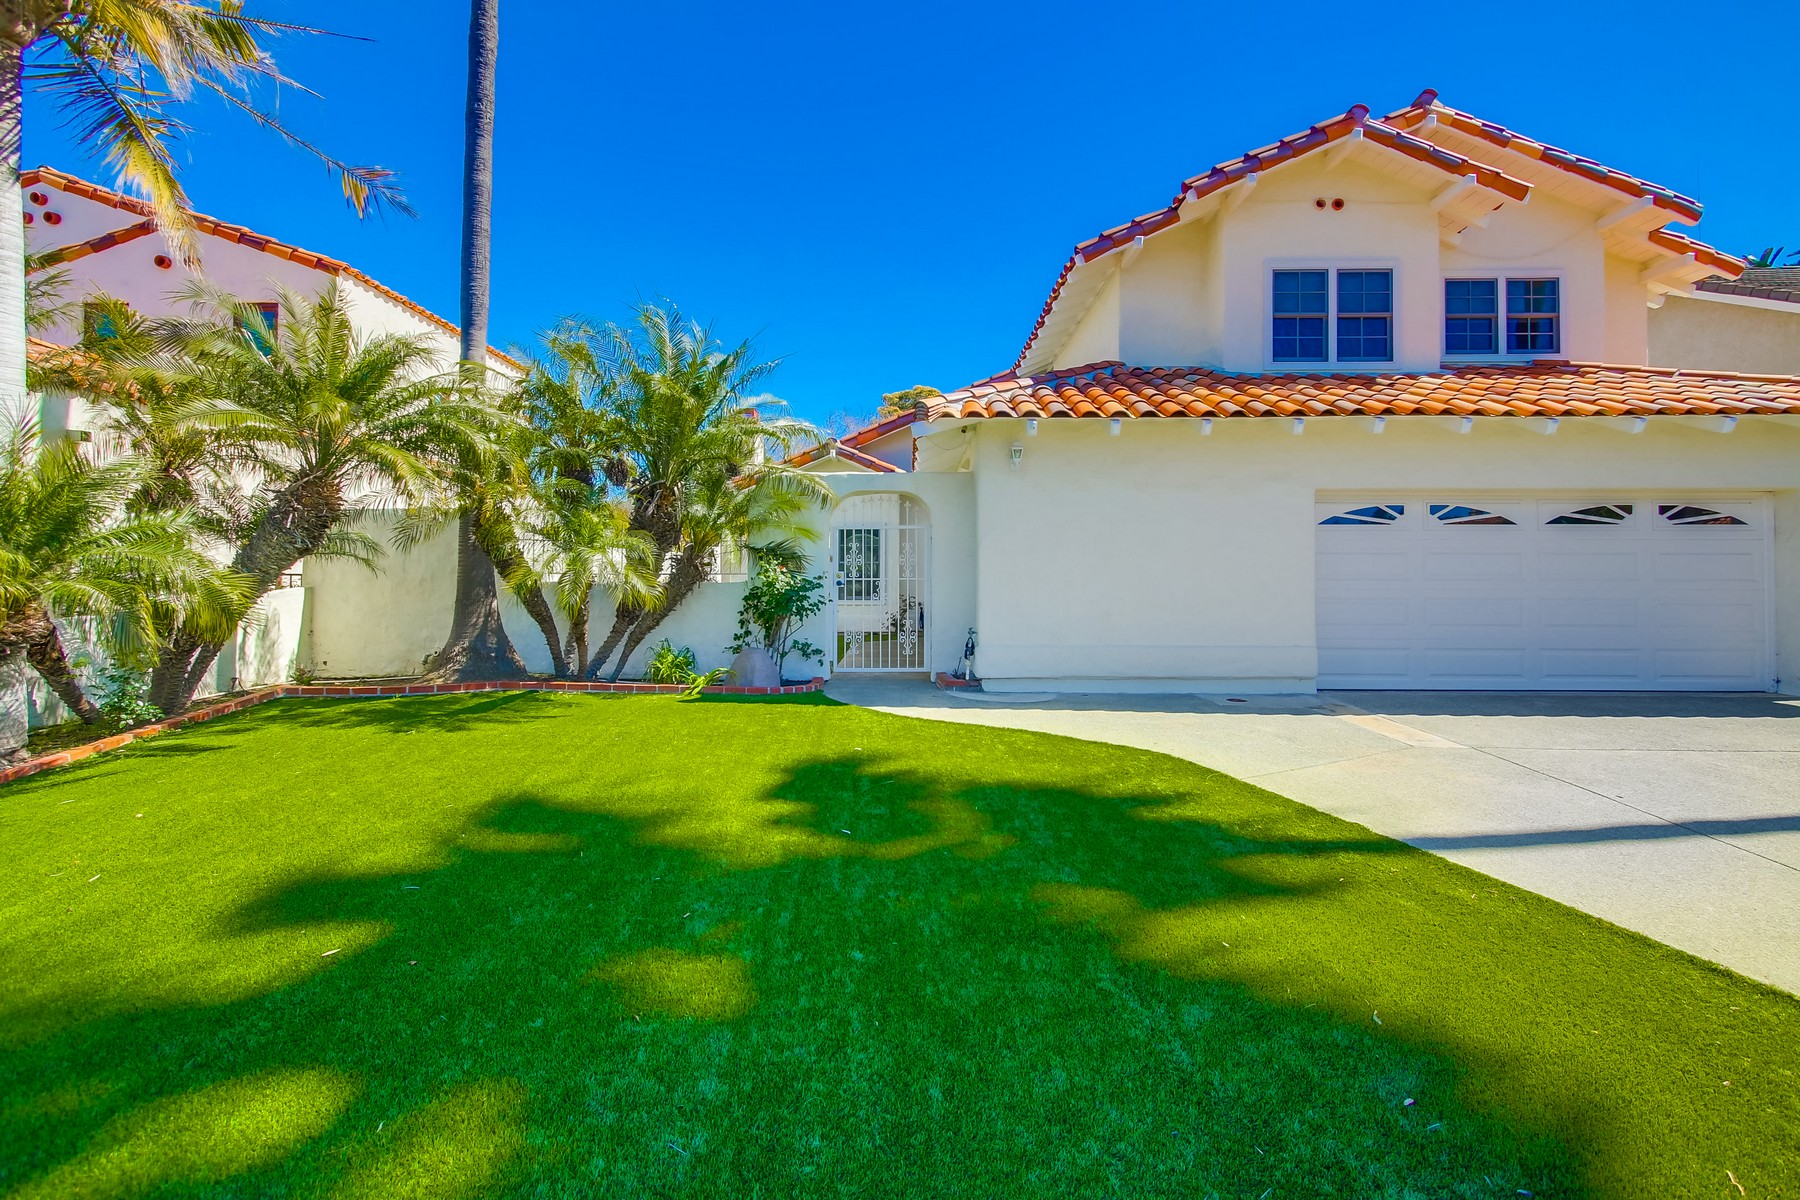 Single Family Home for Sale at 921 Windflower 921 Windflower Way San Diego, California 92106 United States